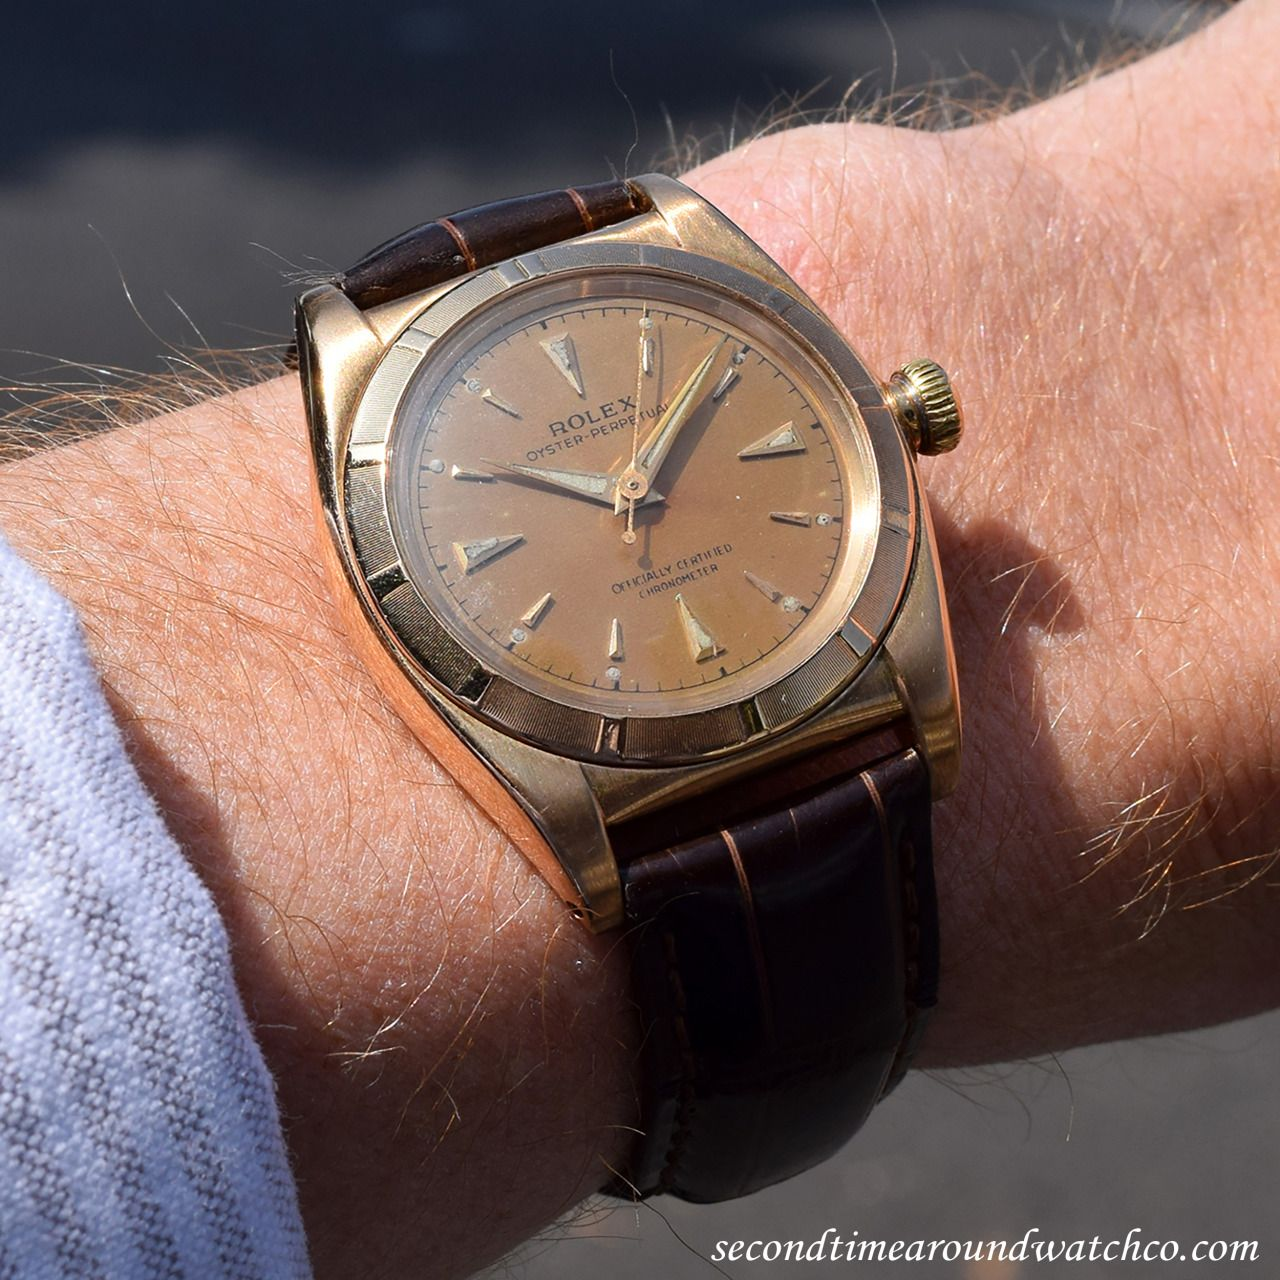 Whoa! Today, I'm wearing a 1948 Rolex Bubbleback Ref. 4777